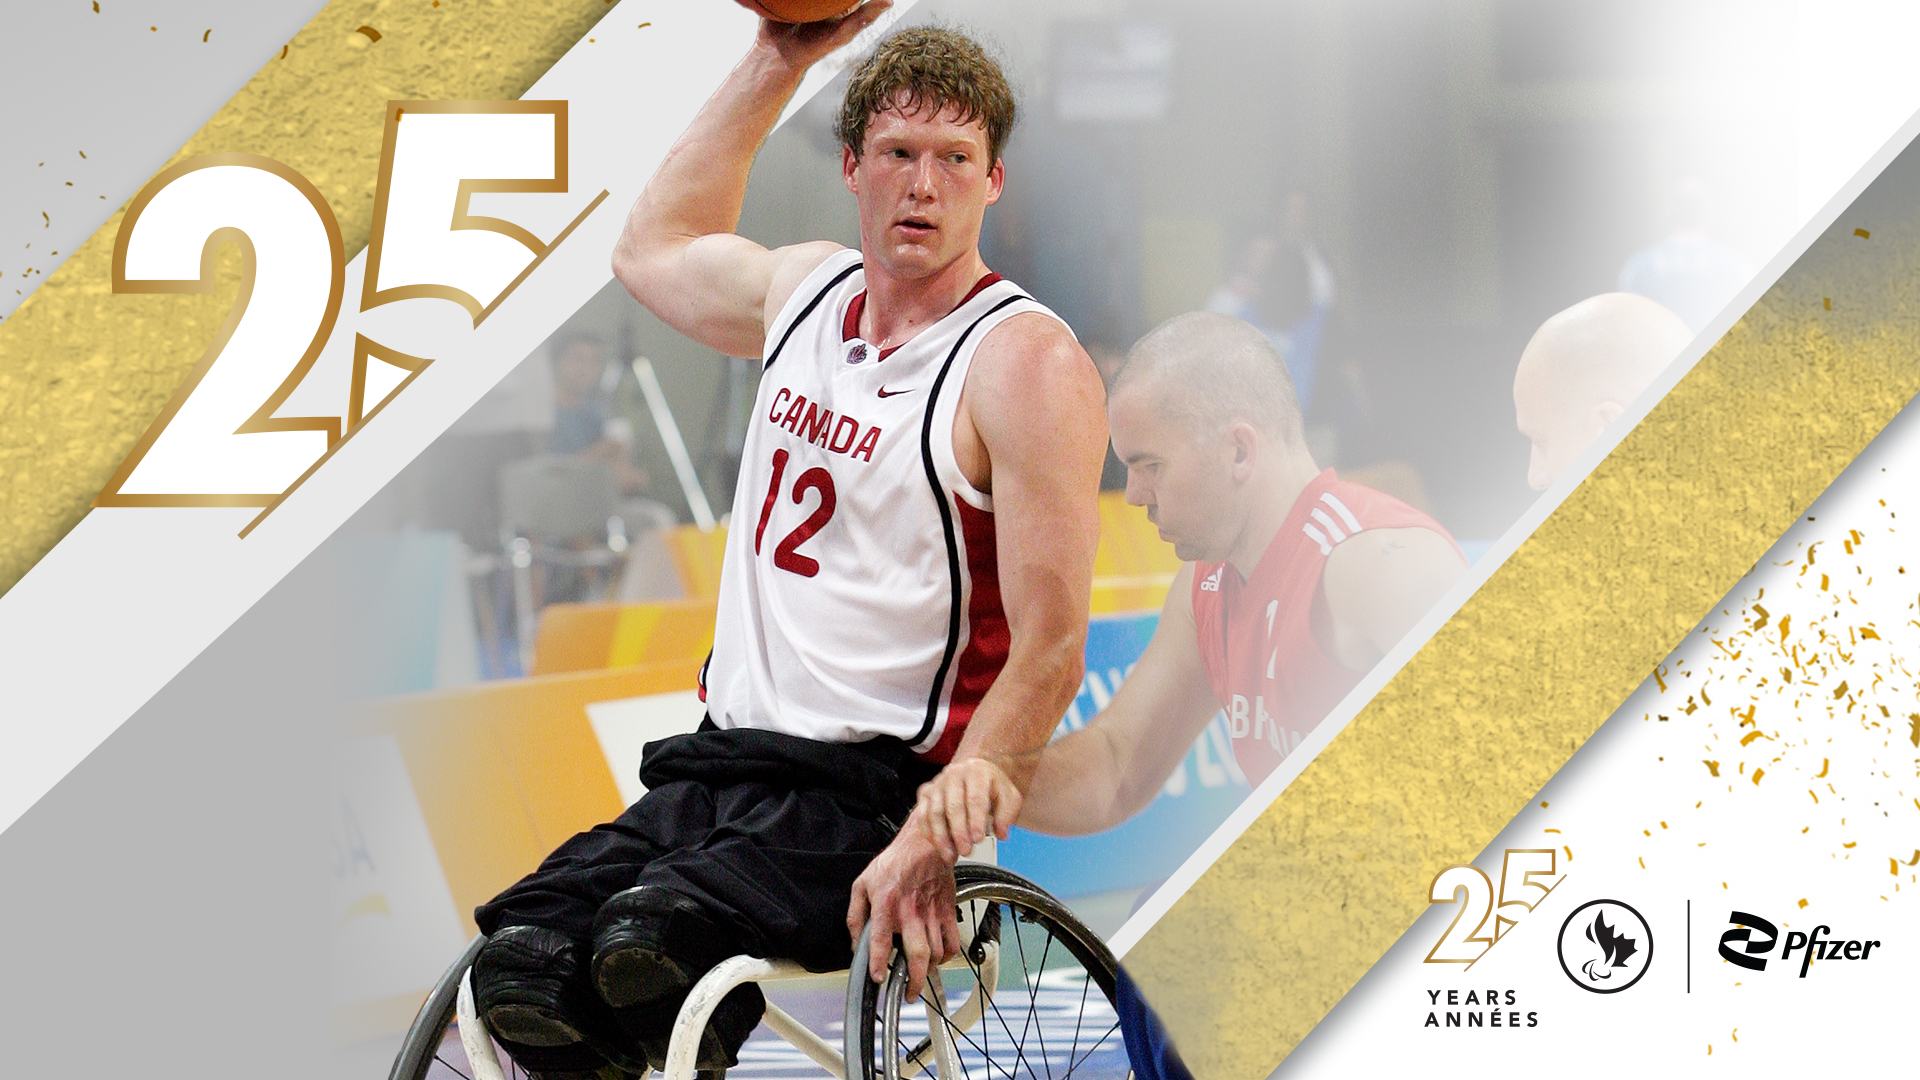 Patrick Anderson, wheelchair basketball